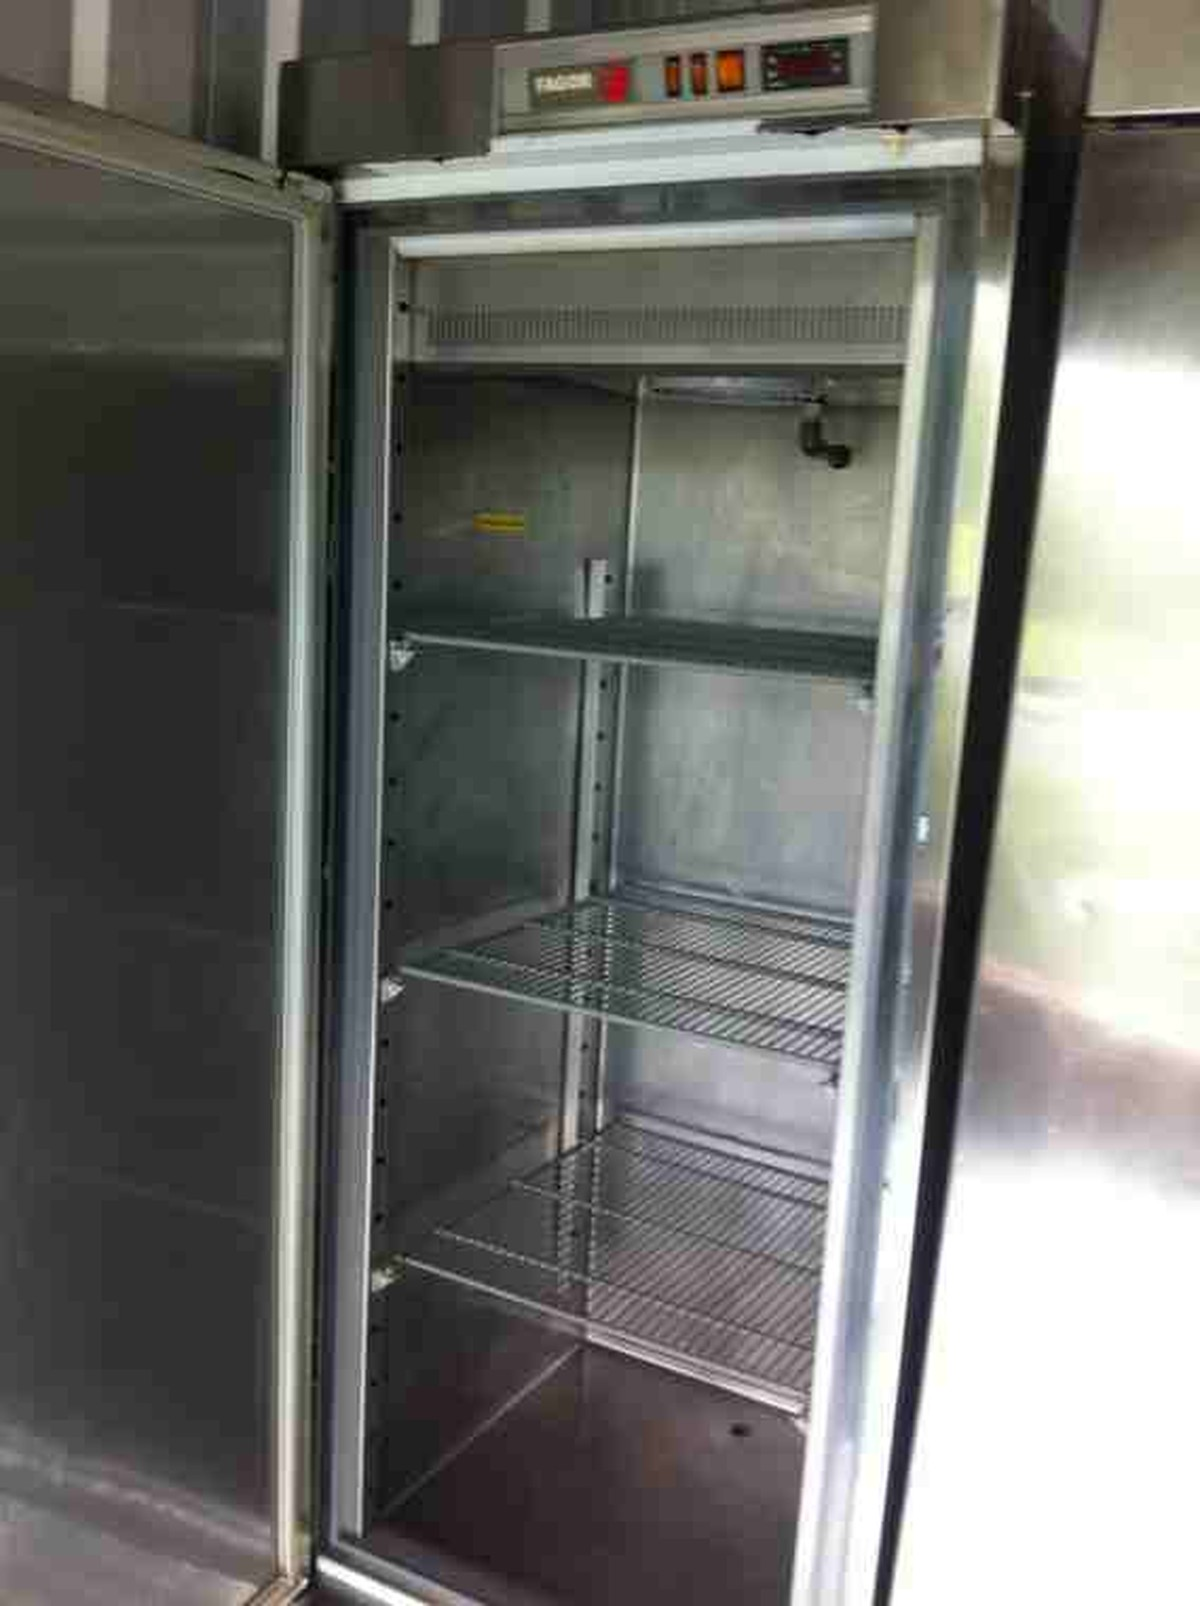 secondhand catering equipment freezers 2x stainless steel upright frigor fridge and freezer. Black Bedroom Furniture Sets. Home Design Ideas